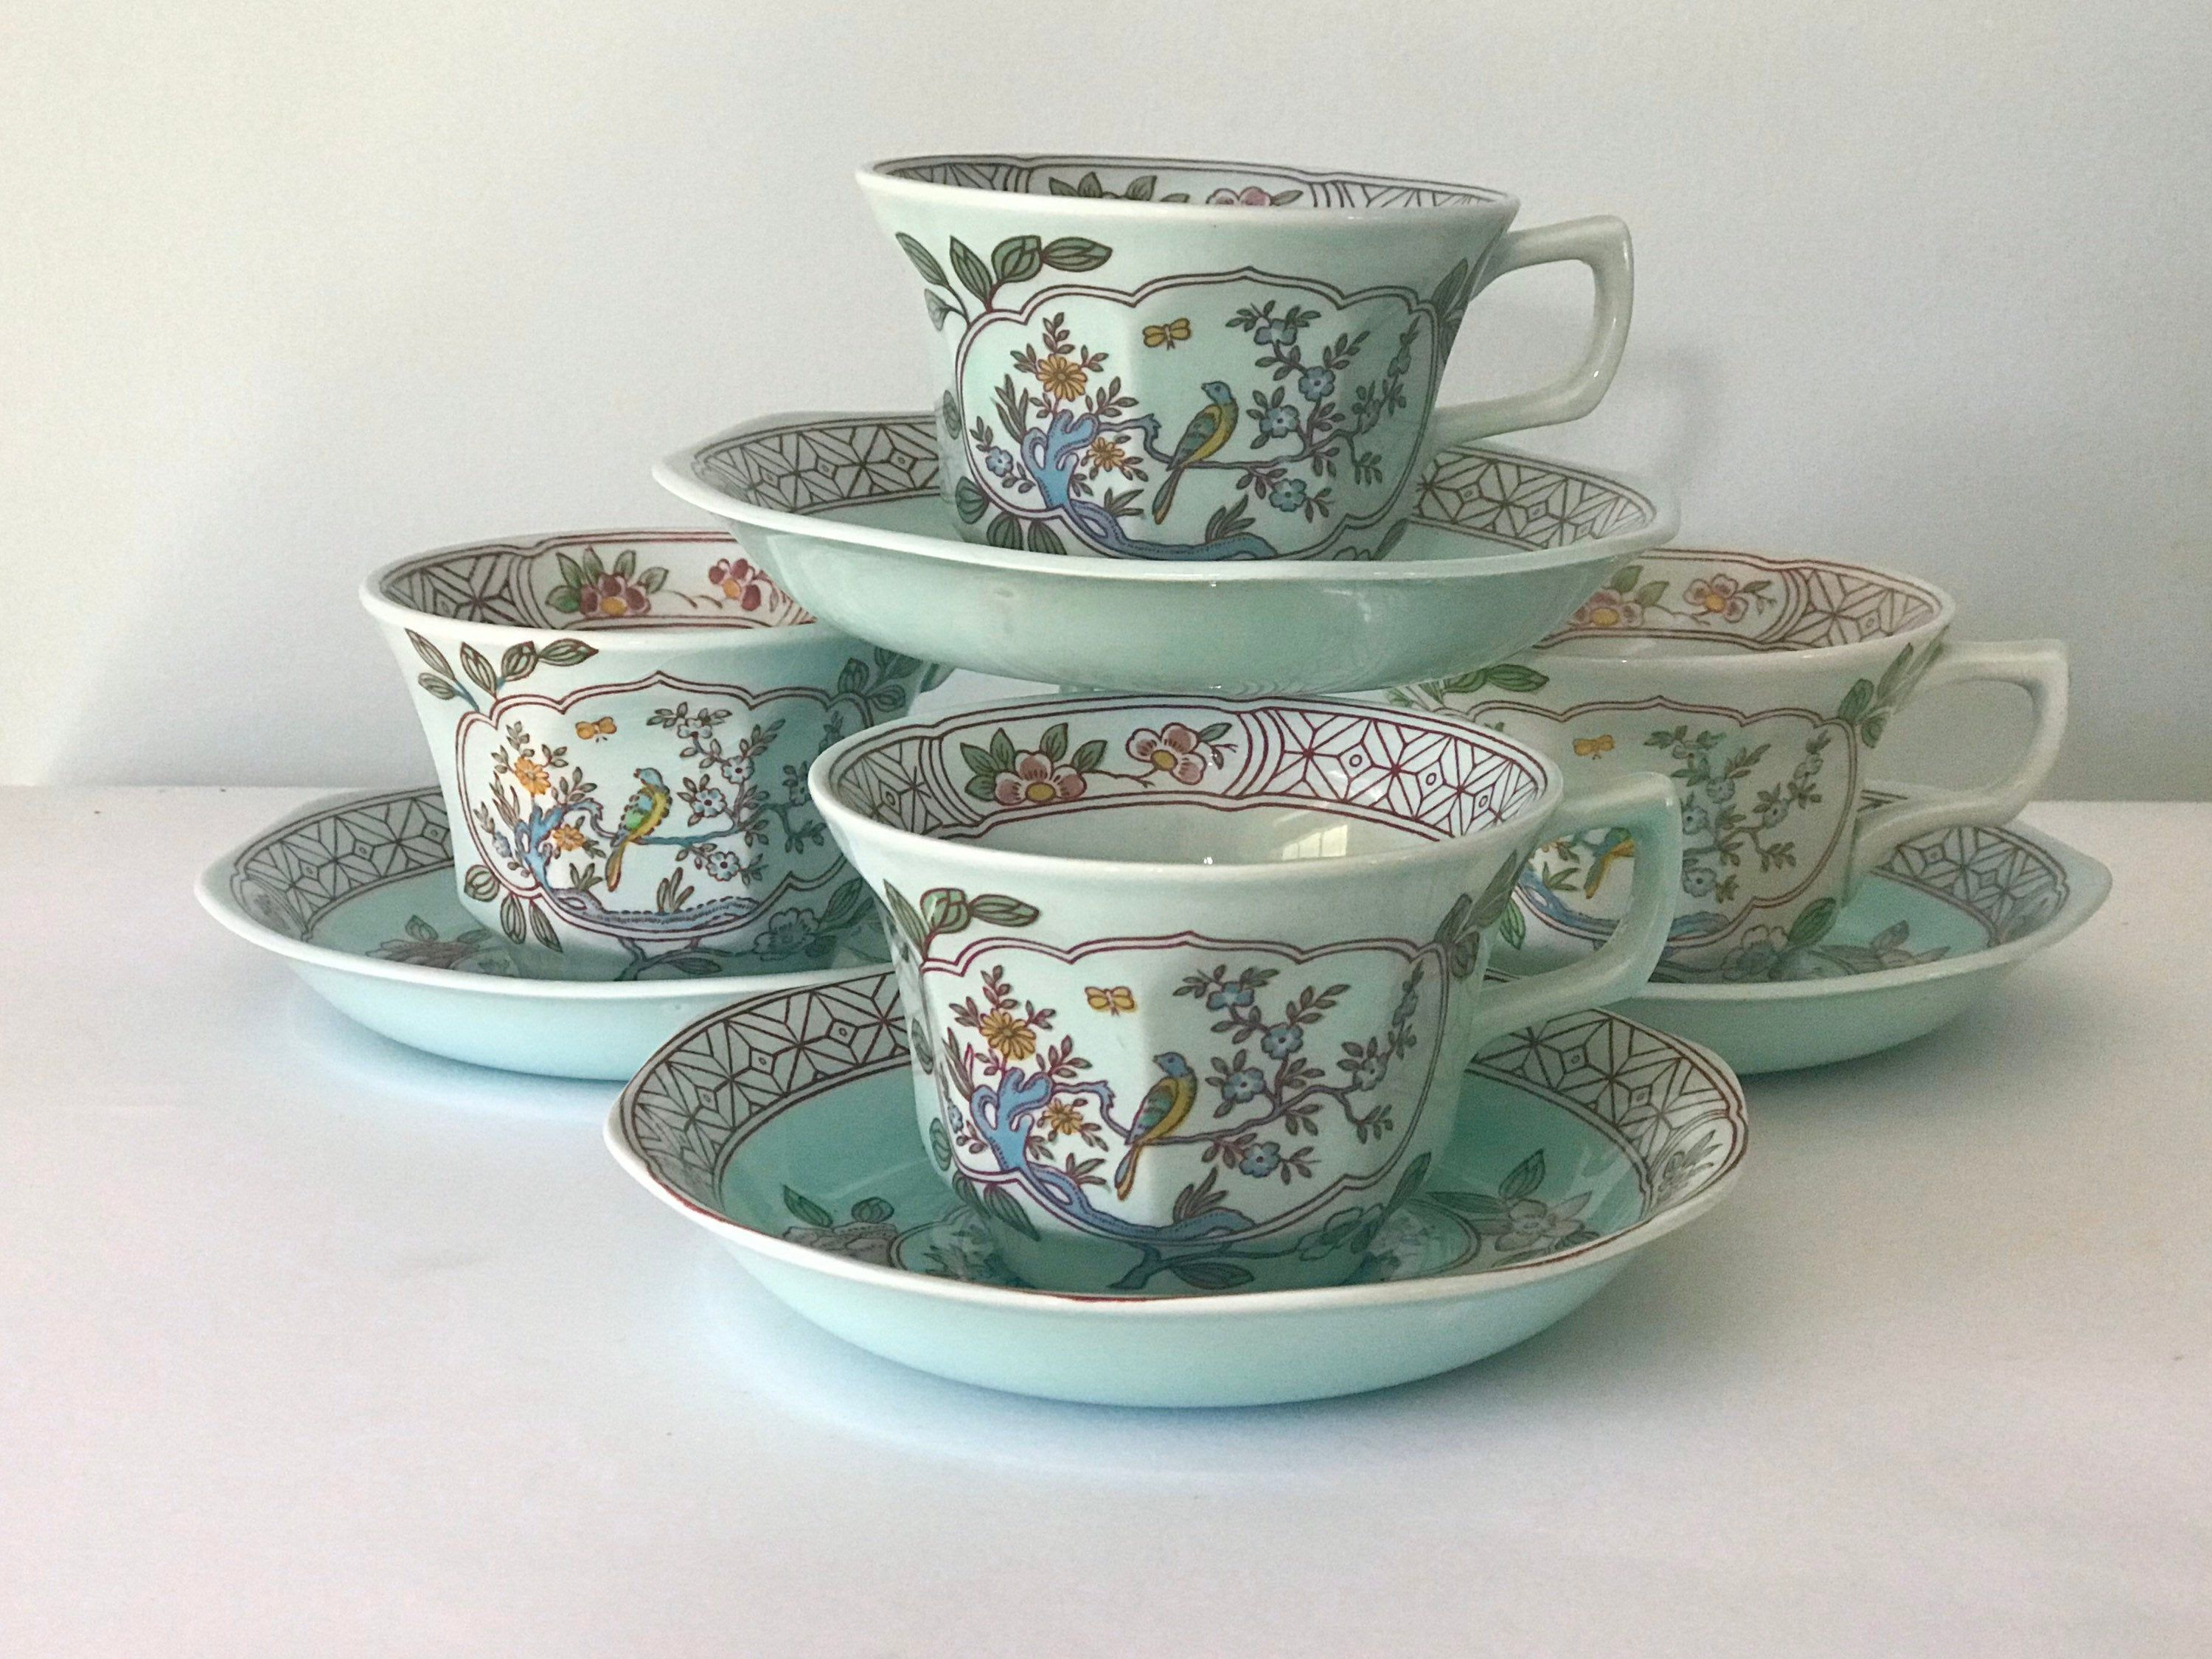 Set of 4 Adams English Ironstone Calyx Ware Cup and Saucer